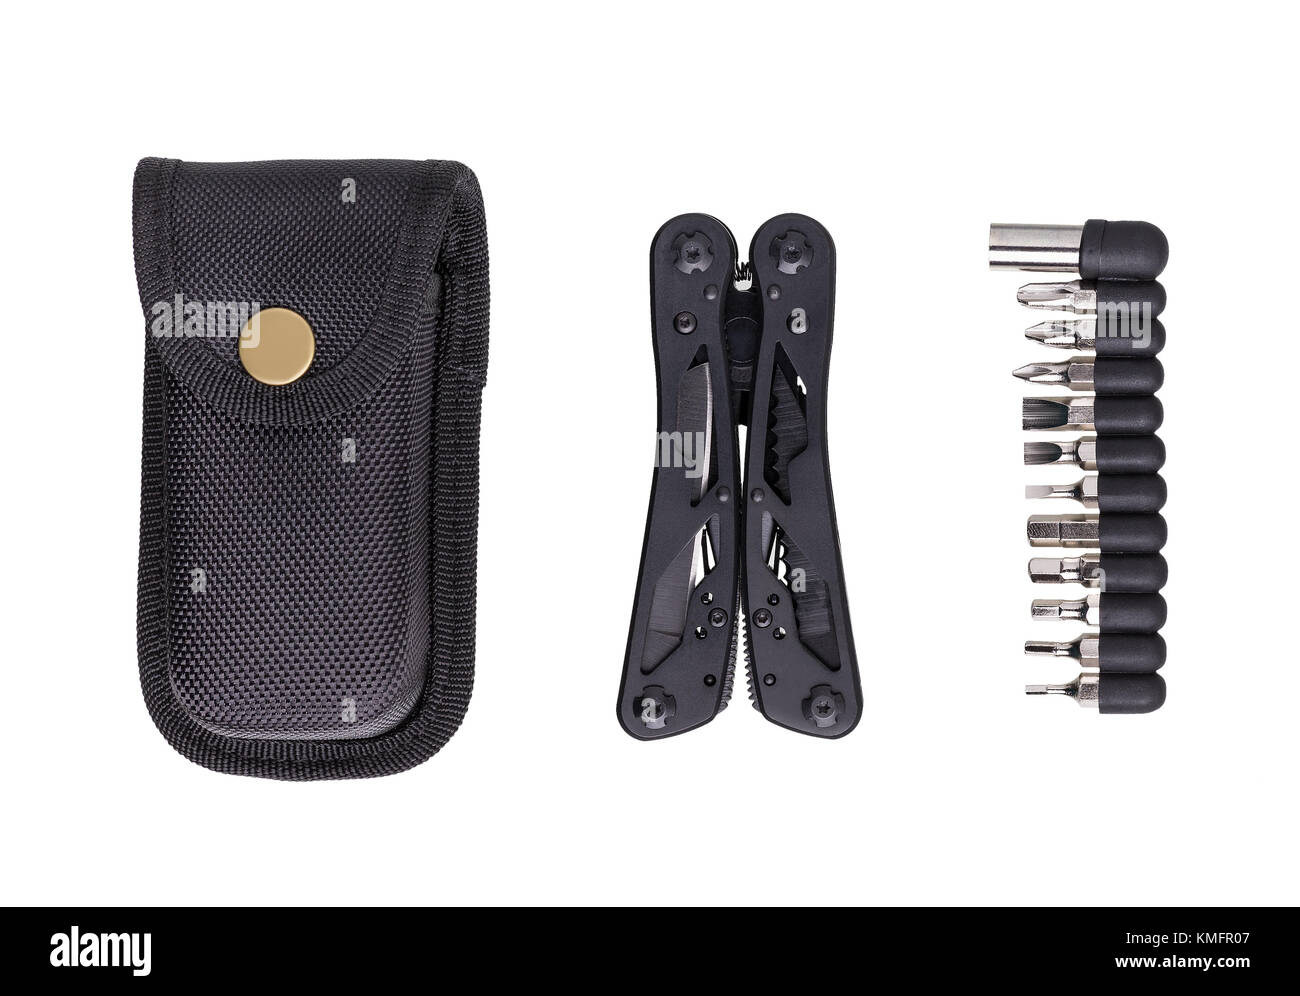 Set of black multitool, set of bits for it and cover on white background. Multitool is a universal tool for various - Stock Image